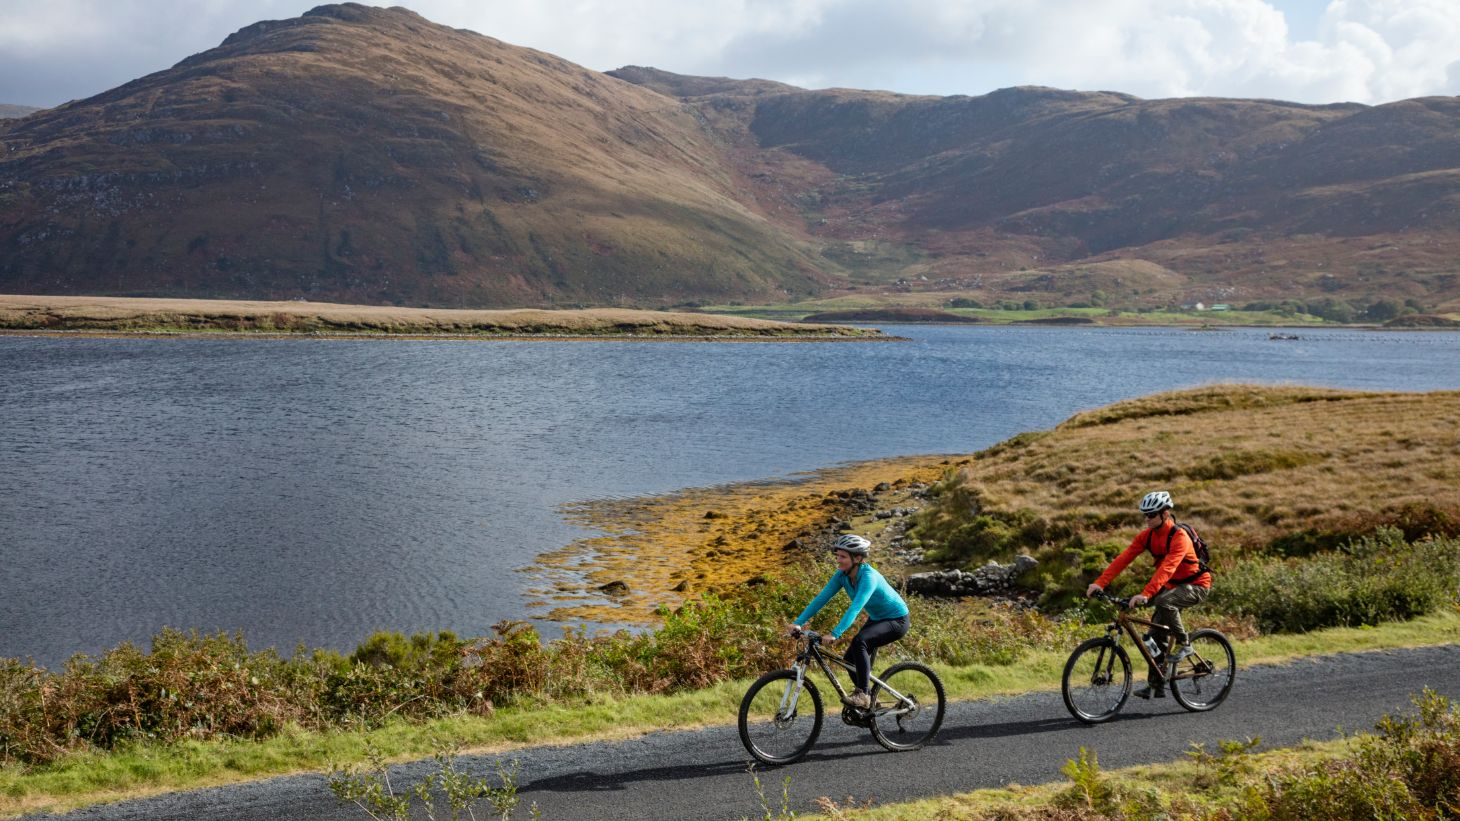 Discover the Great Western Greenway.